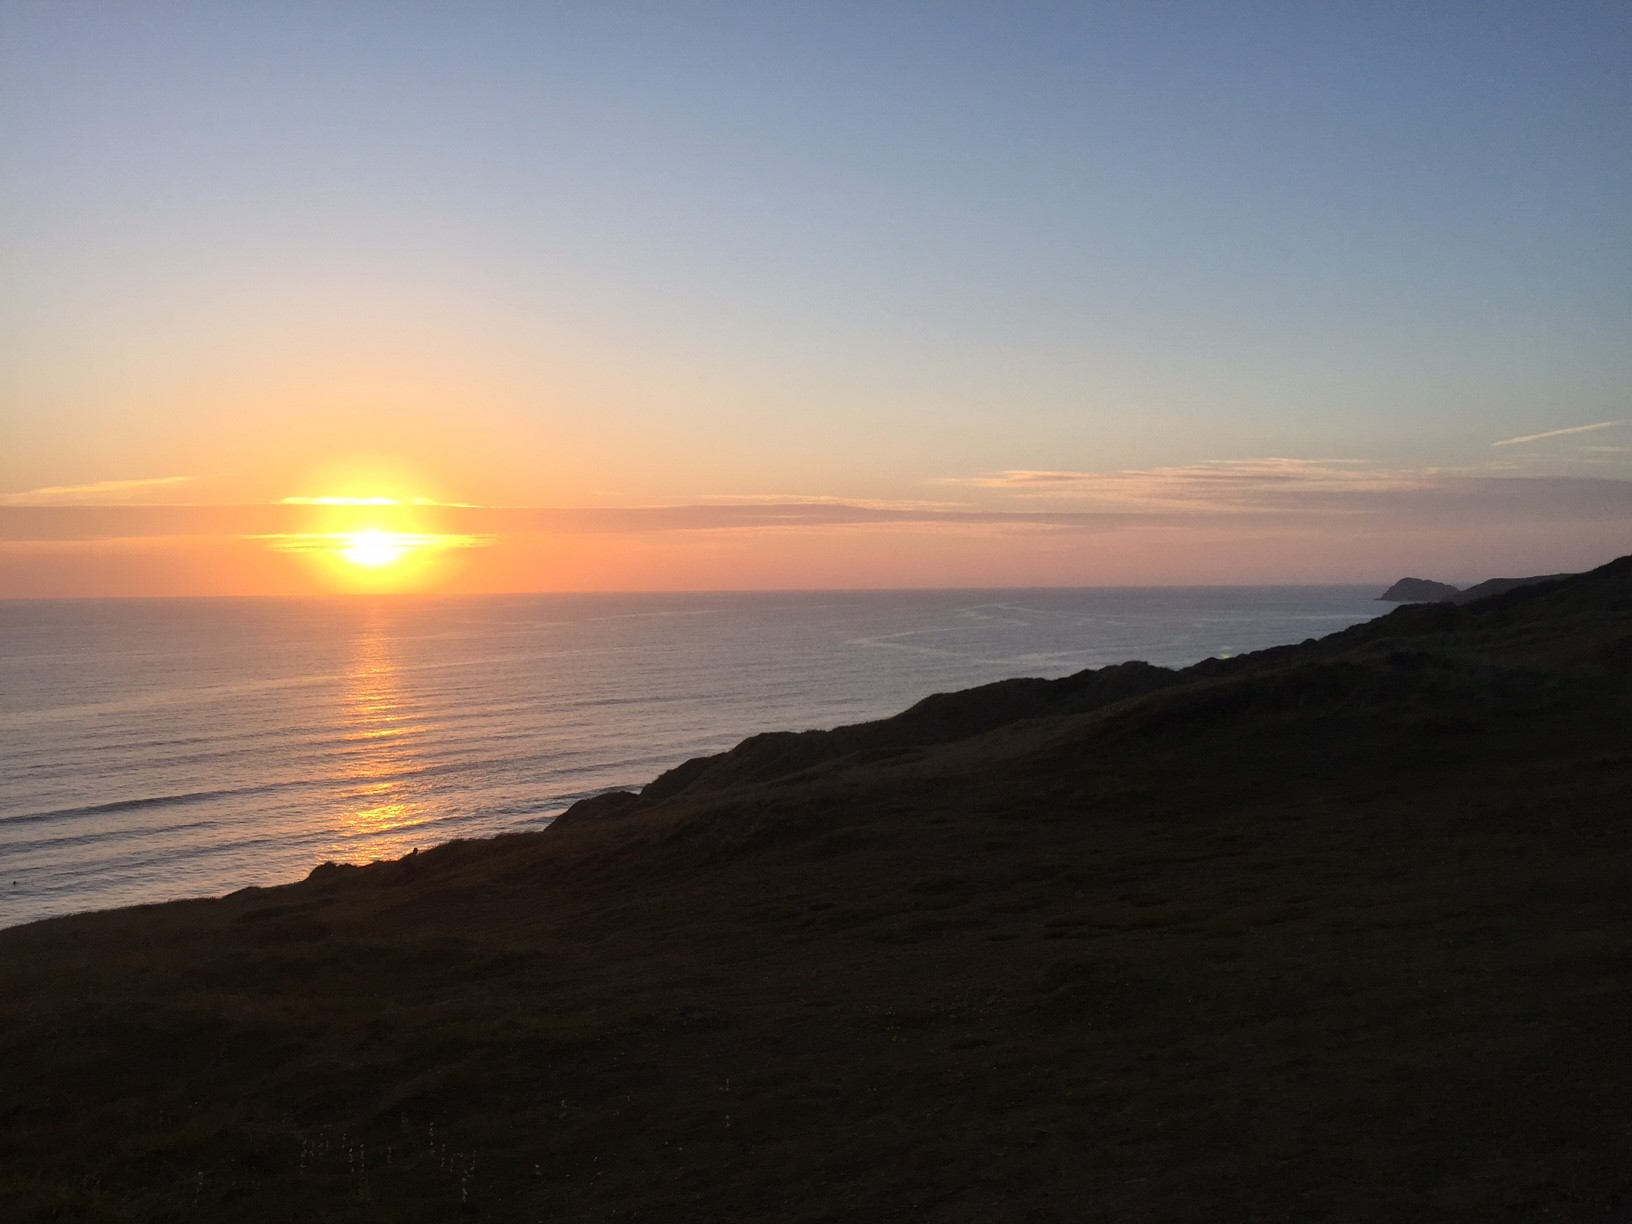 A lovely sunset whilst on holiday in Cornwall.